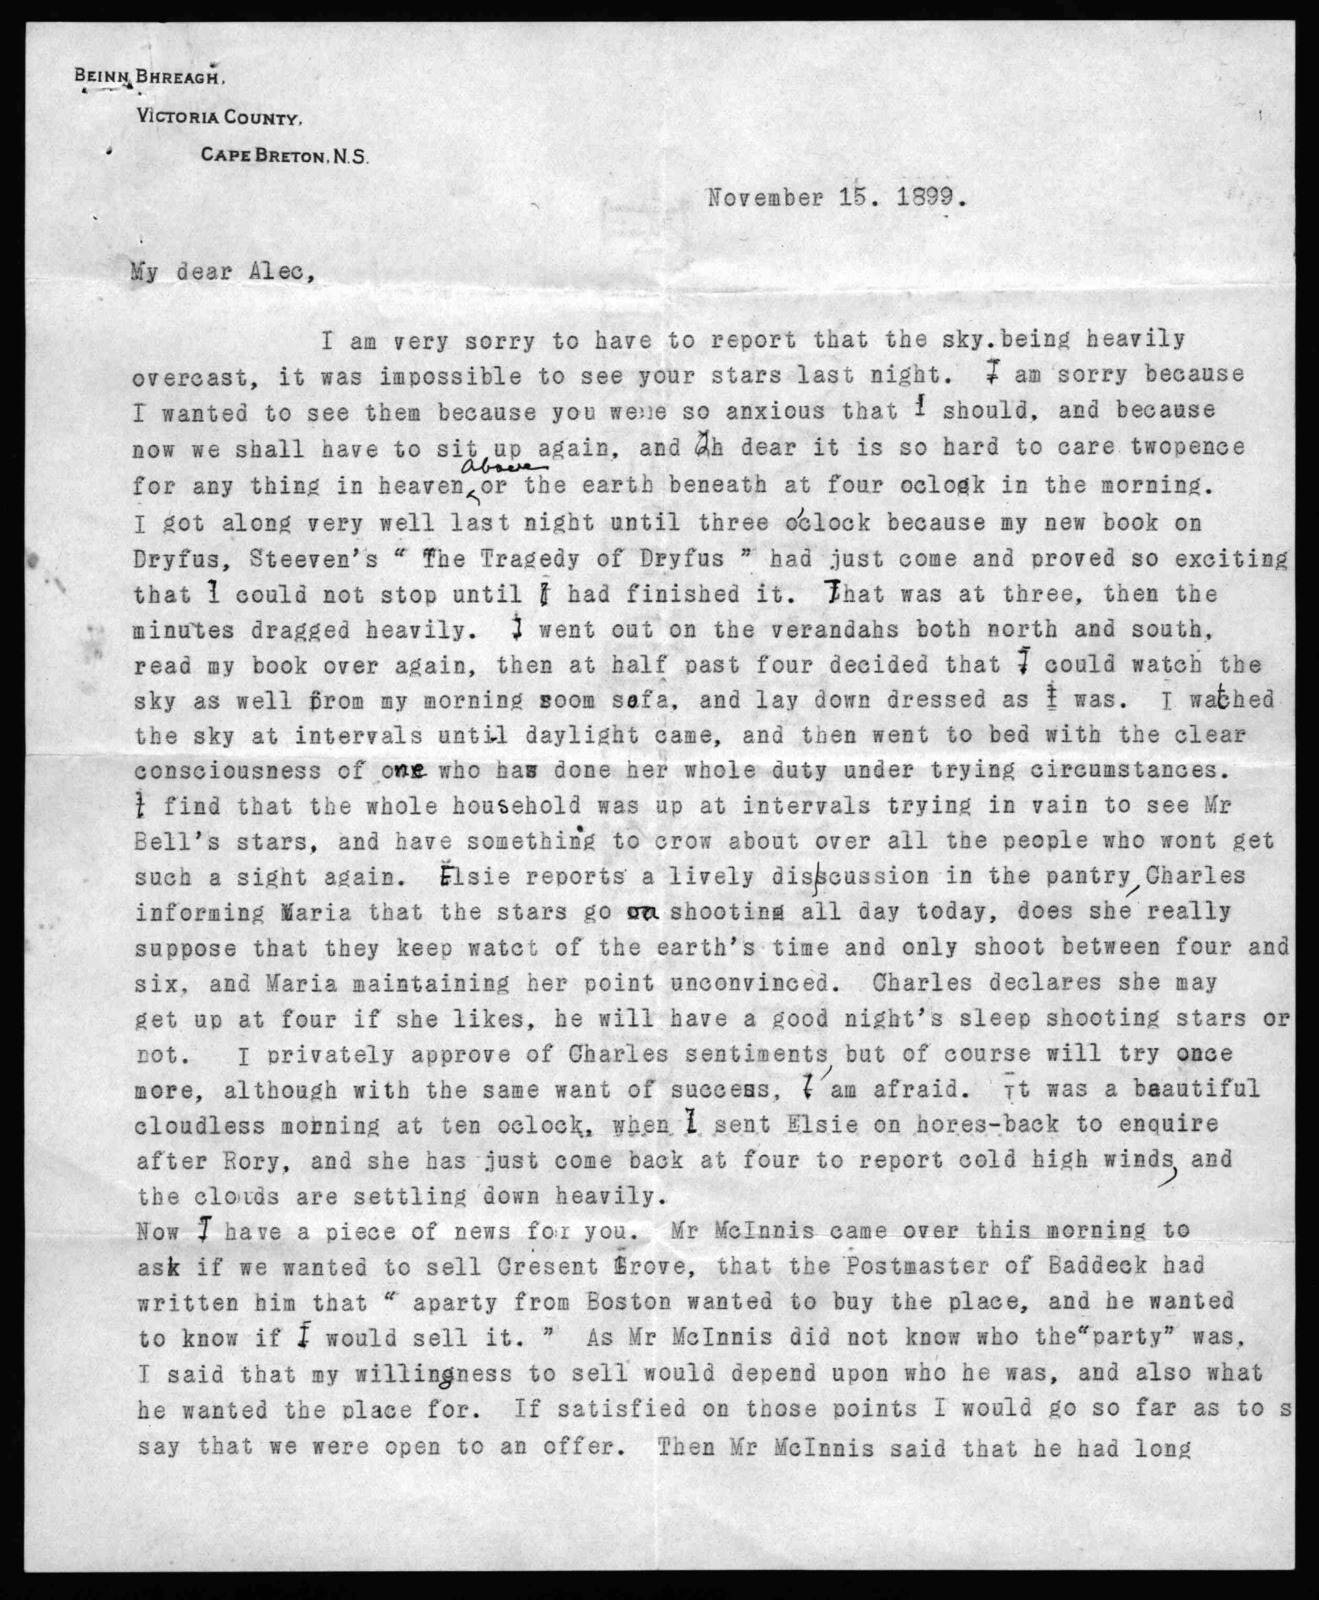 Letter from Mabel Hubbard Bell to Alexander Graham Bell, November 15, 1899